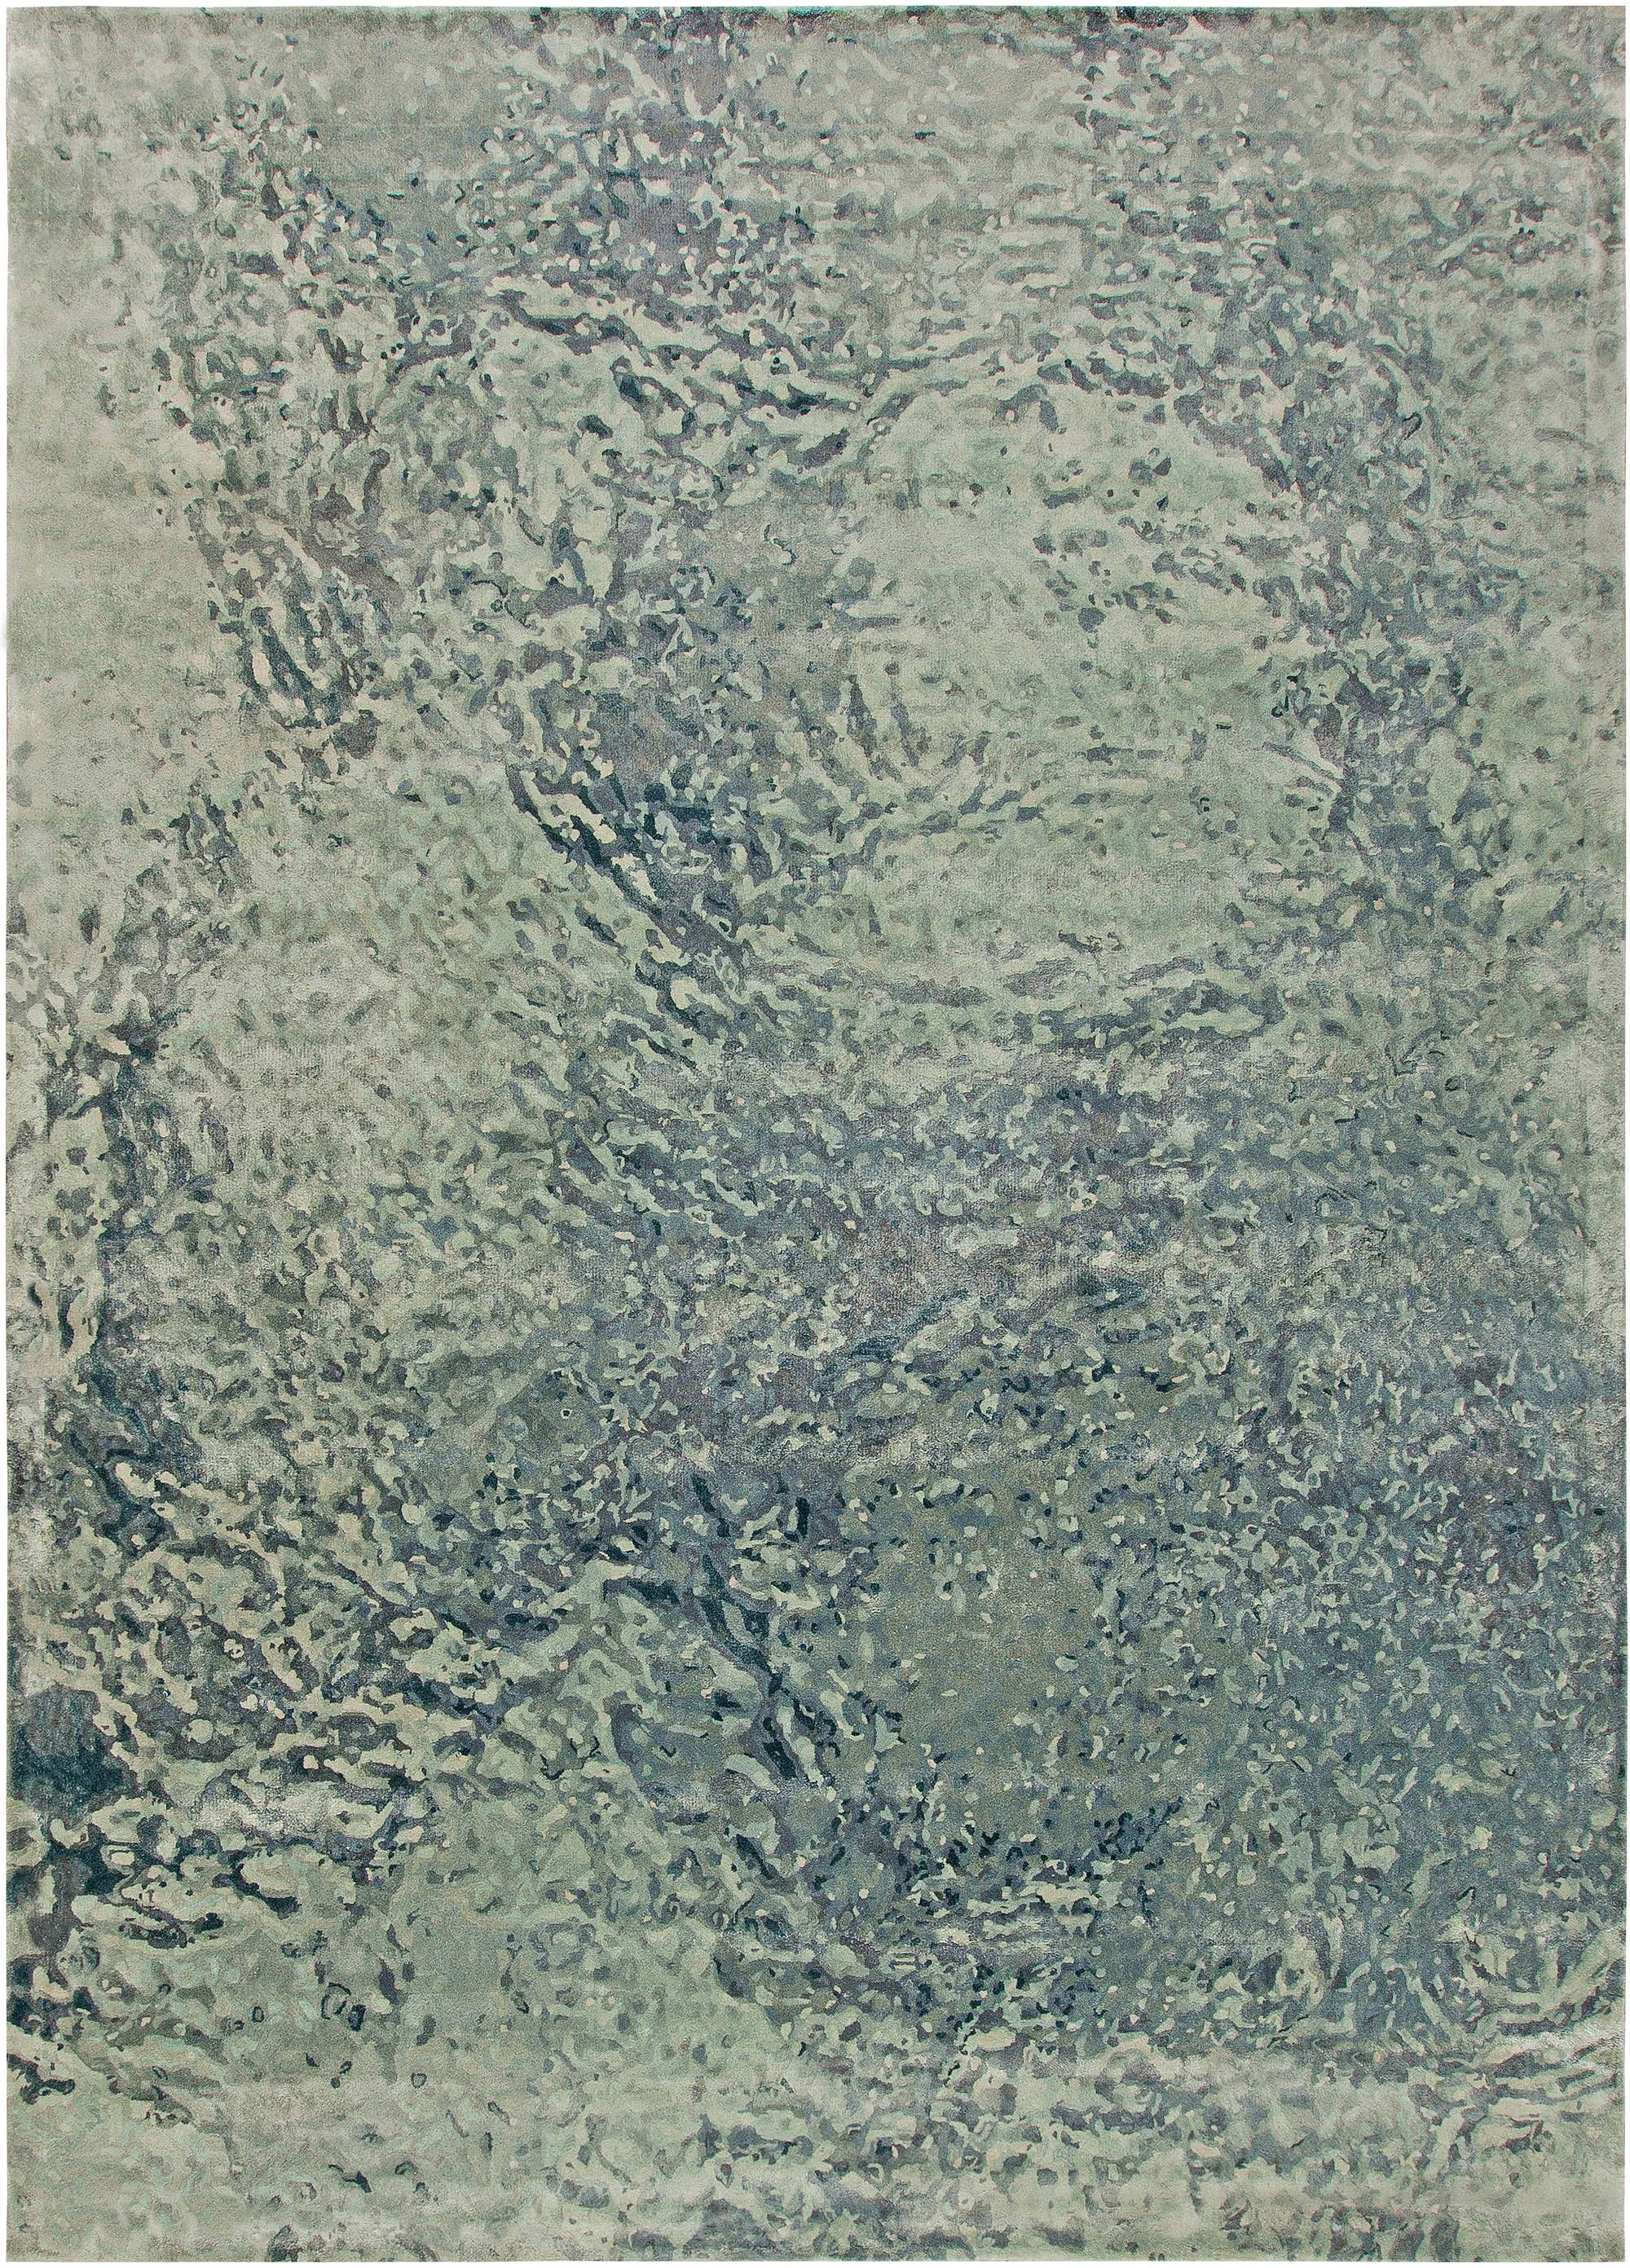 Water Design Rug Ii Contemporary Rugs Modern Interior Decor